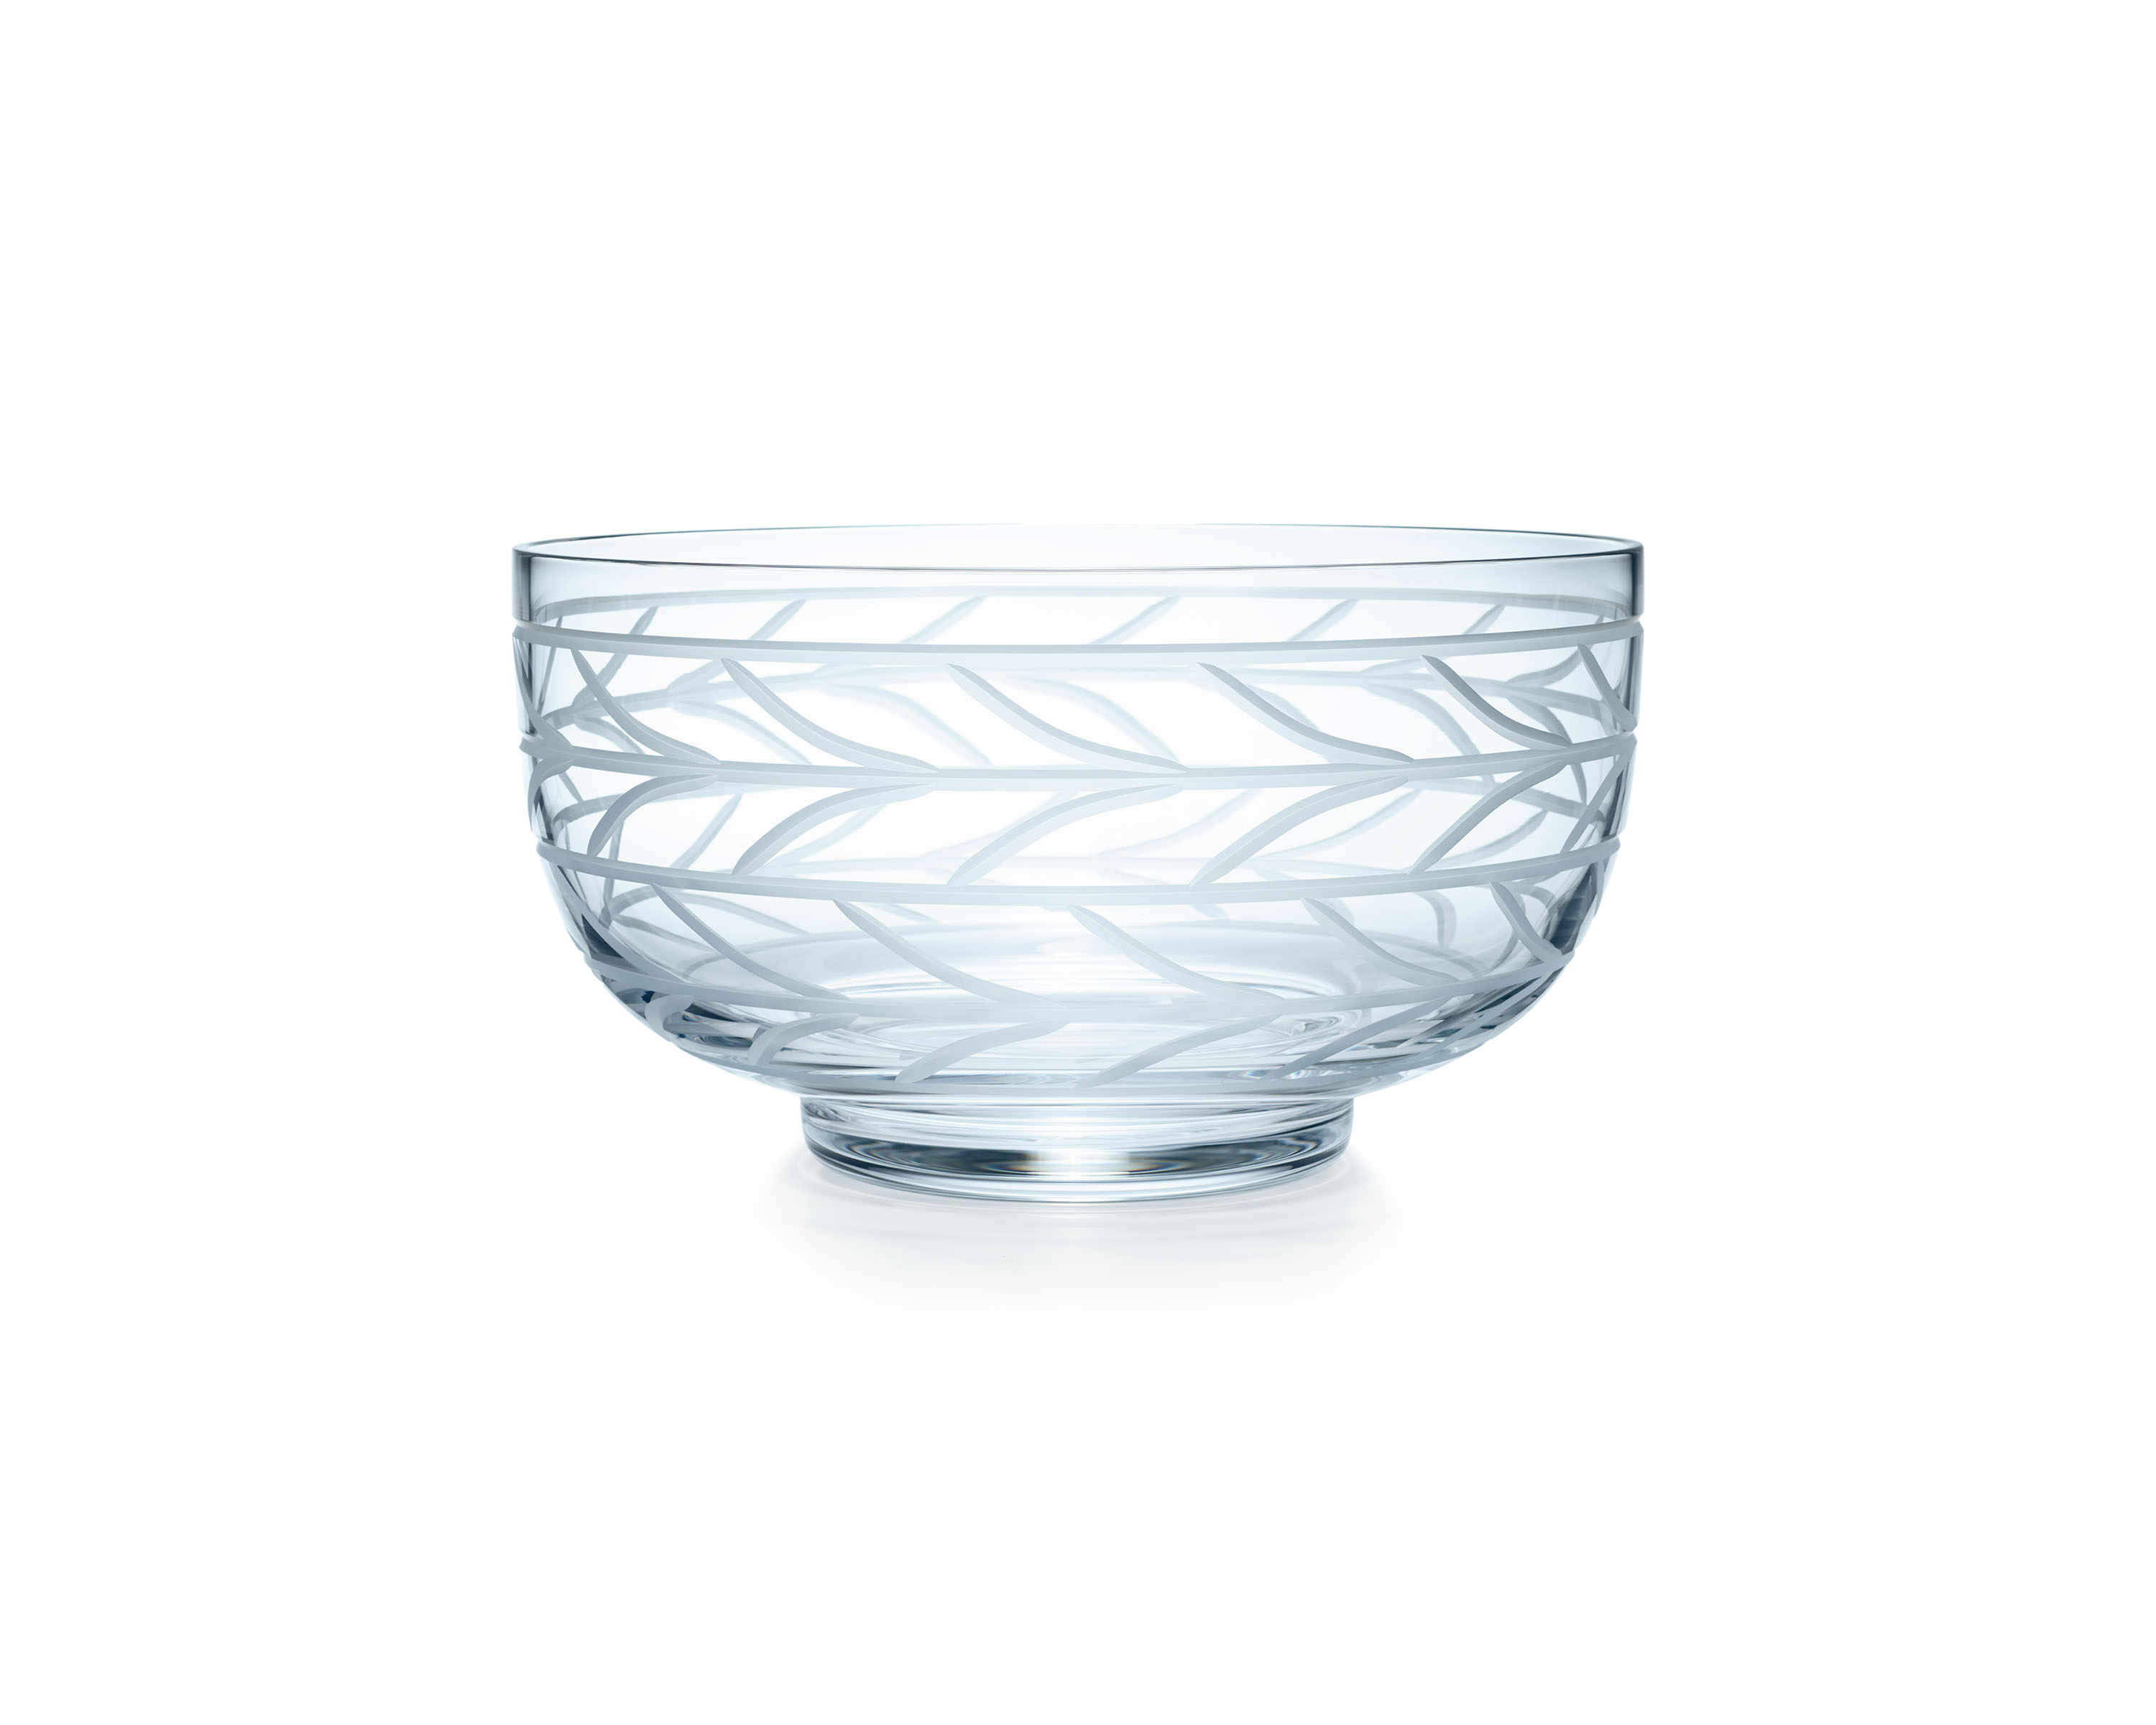 Tiffany & Co. Wheat Leaf bowl in crystal glass, large, $180.00. (Photo Credit: Tiffany & Co.)